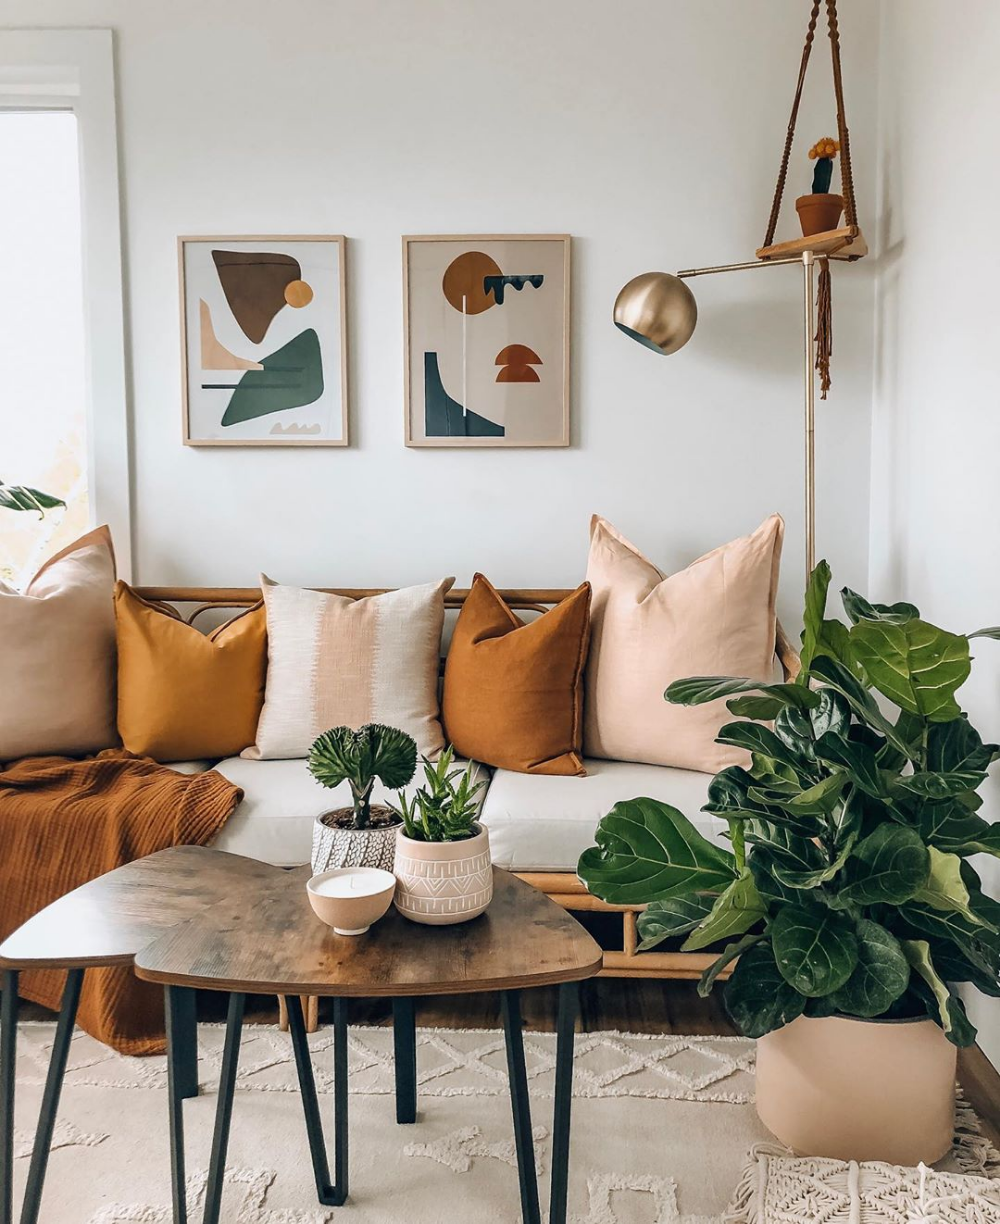 Neutral Boho Living Room With Mustard And Blush Rattan Sofa Sculptural Plants And Modern Abstract Art Living Room Designs Living Room Decor Boho Living Room #neutral #bohemian #living #room